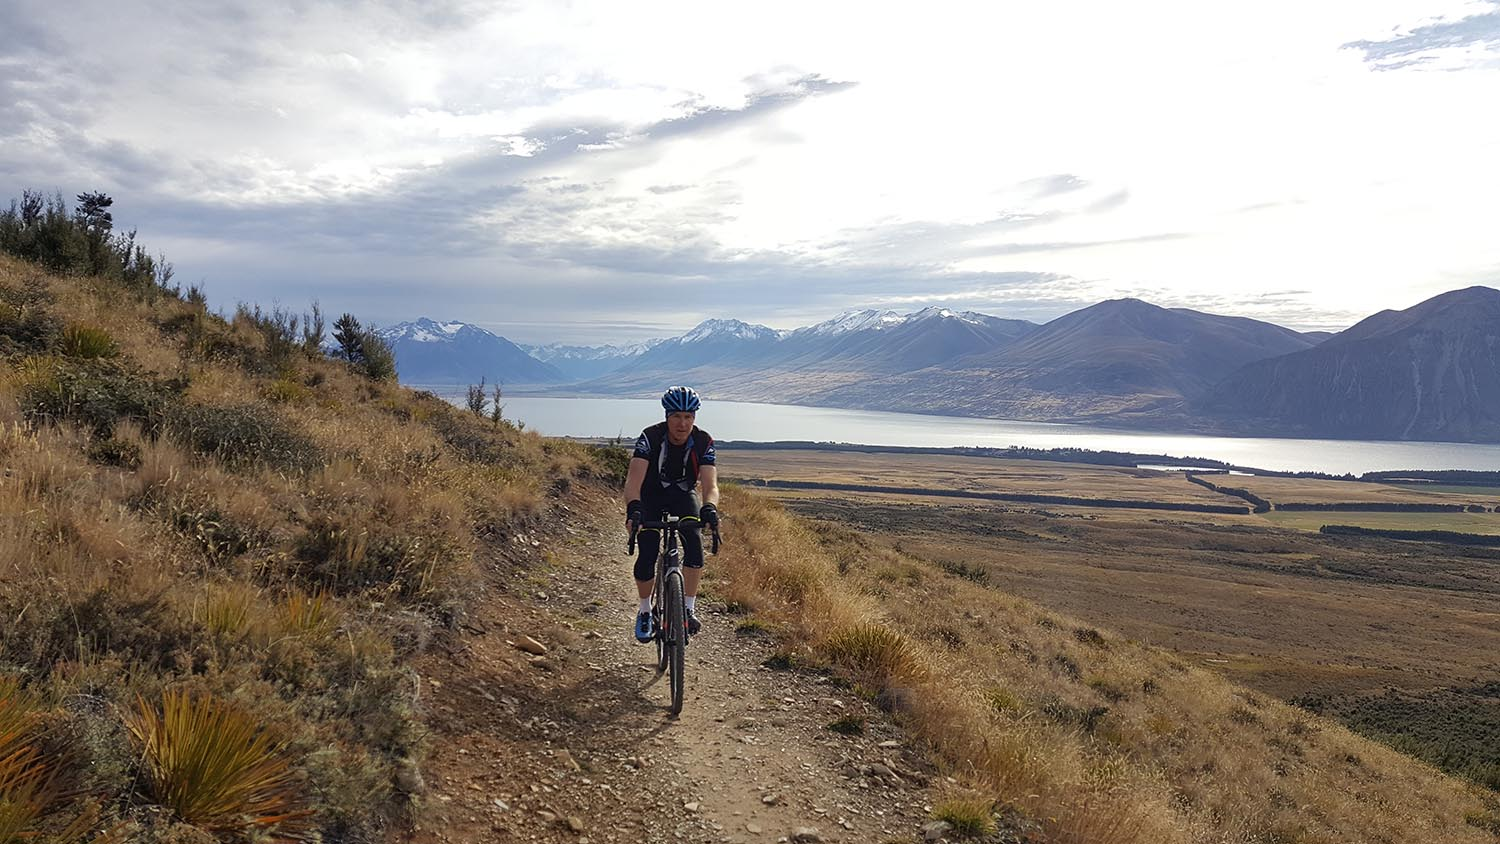 The A2O trail which winds its way from Ohau to Omarama is gravel bike perfection